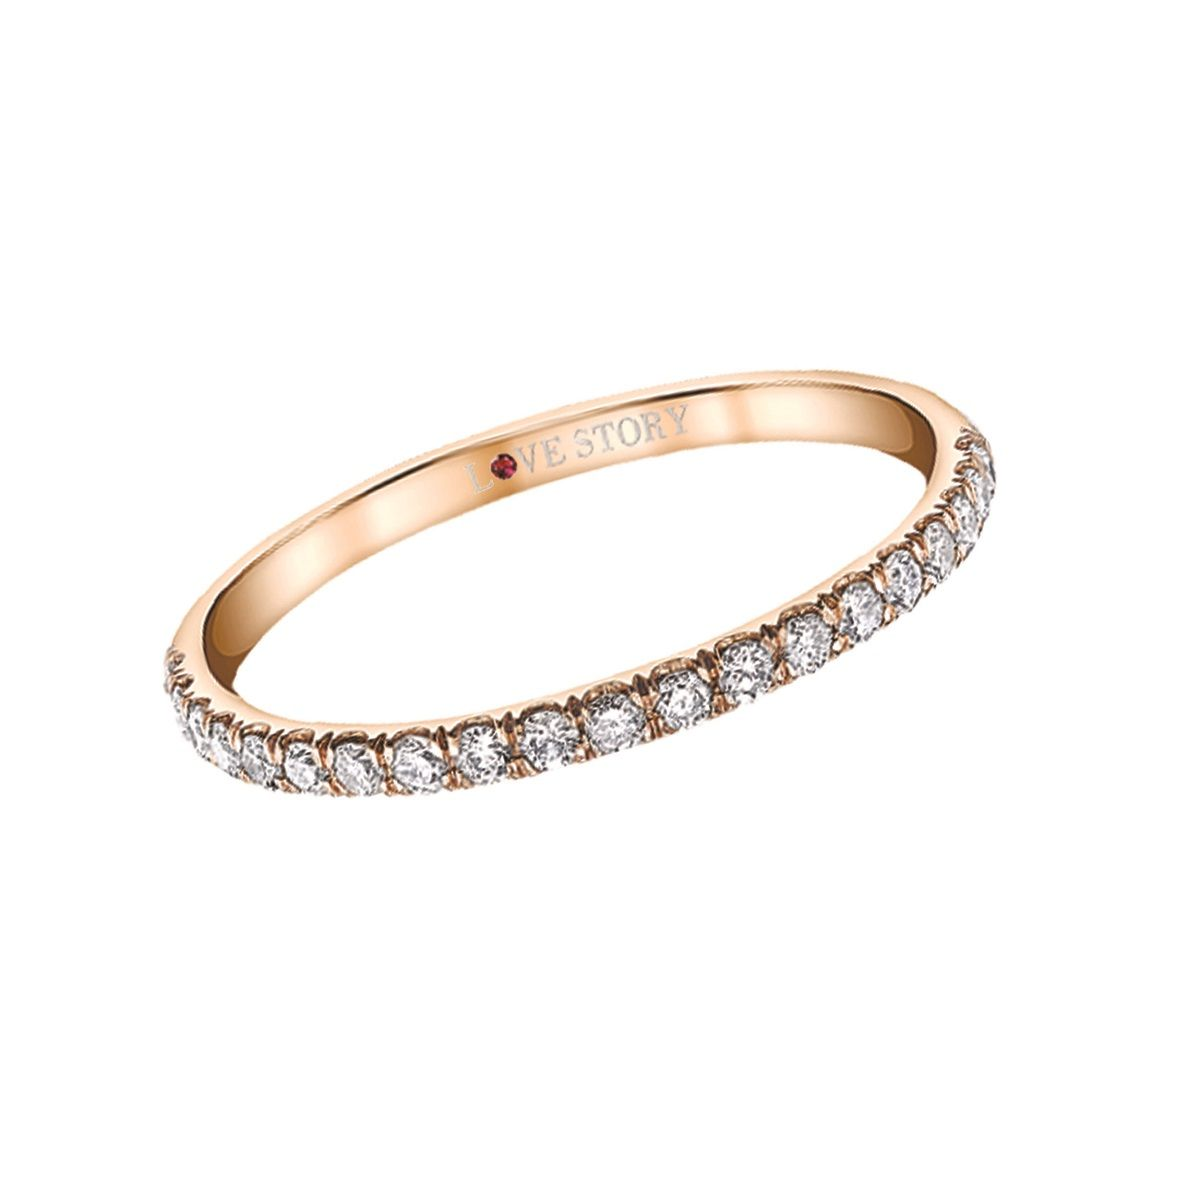 Tilted Halo Love Story Diamond Wedding Ring Steven Singer Jewelers #rosegoldband